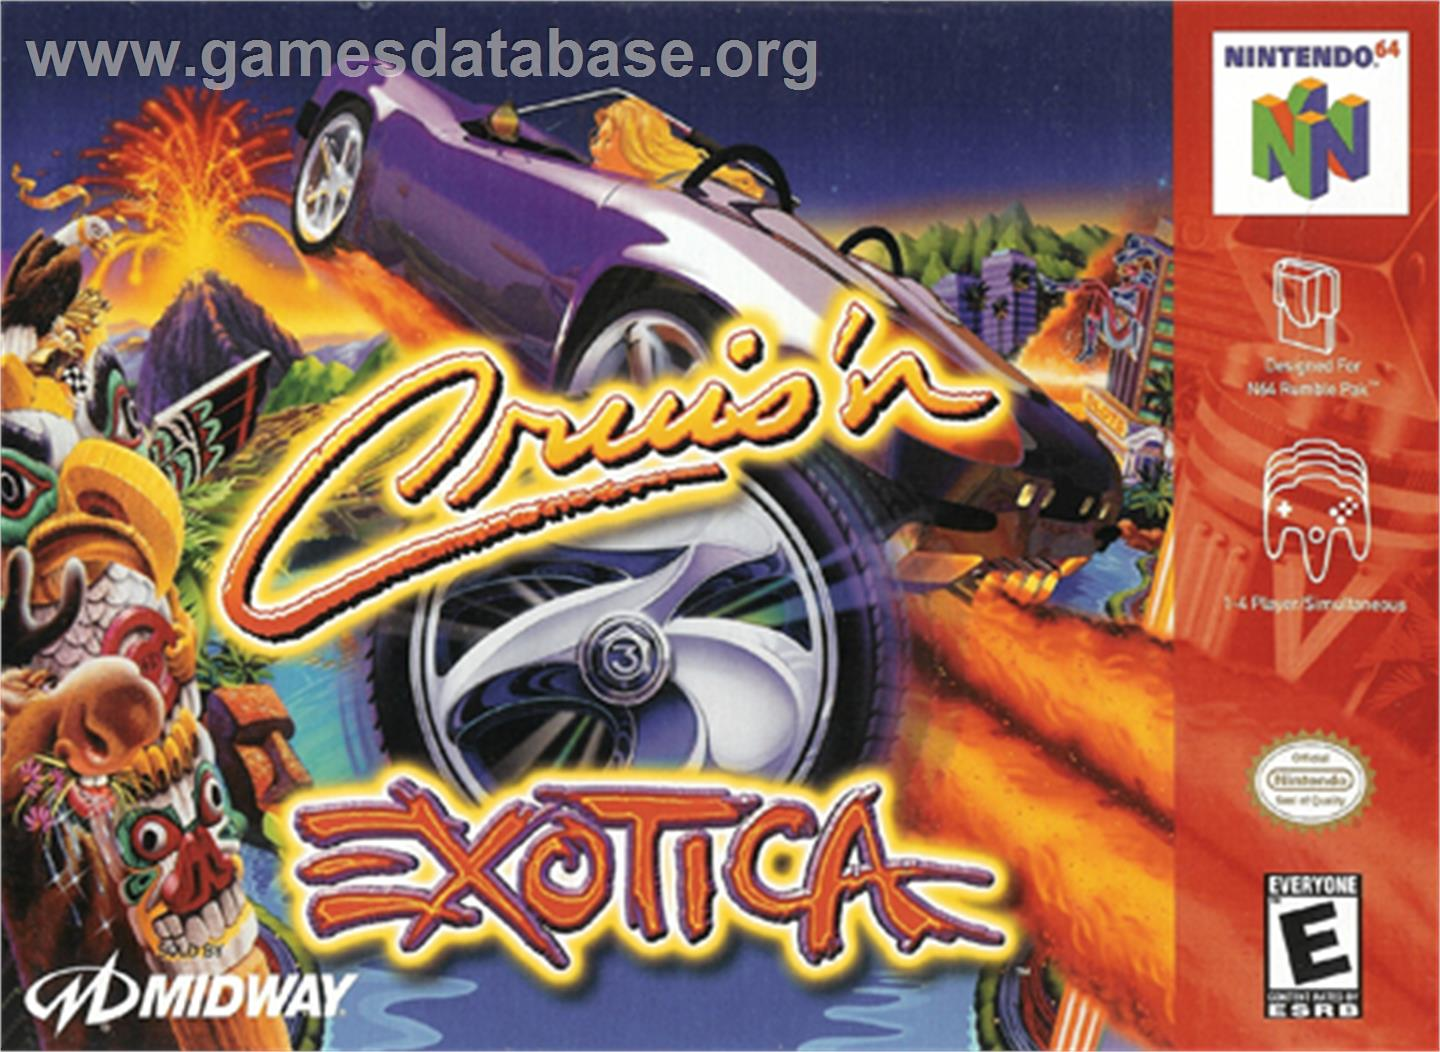 Cruis'n Exotica - Nintendo N64 - Artwork - Box